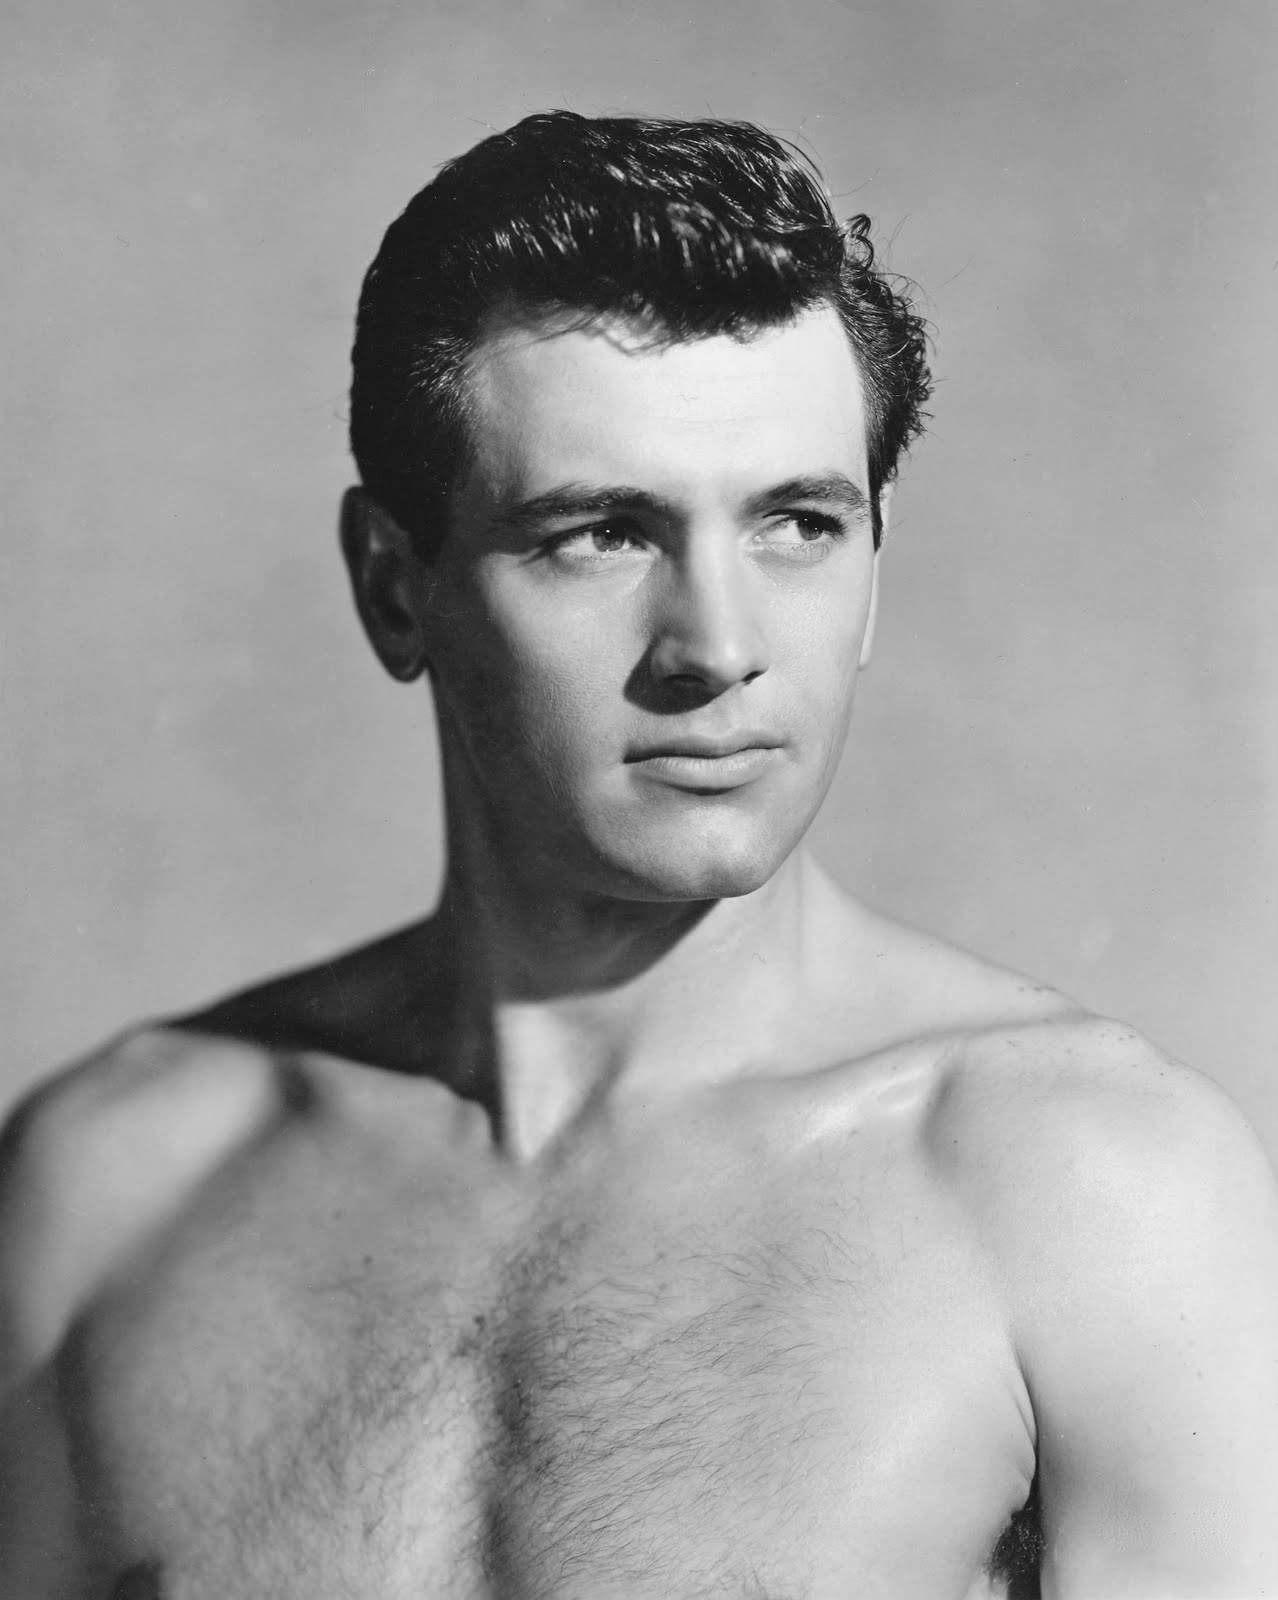 http://3.bp.blogspot.com/-Nd7Ih07tS7Q/Tm9atprbxMI/AAAAAAABExY/Vs1fd_uPELA/s1600/shirtless-rock-hudson.jpg